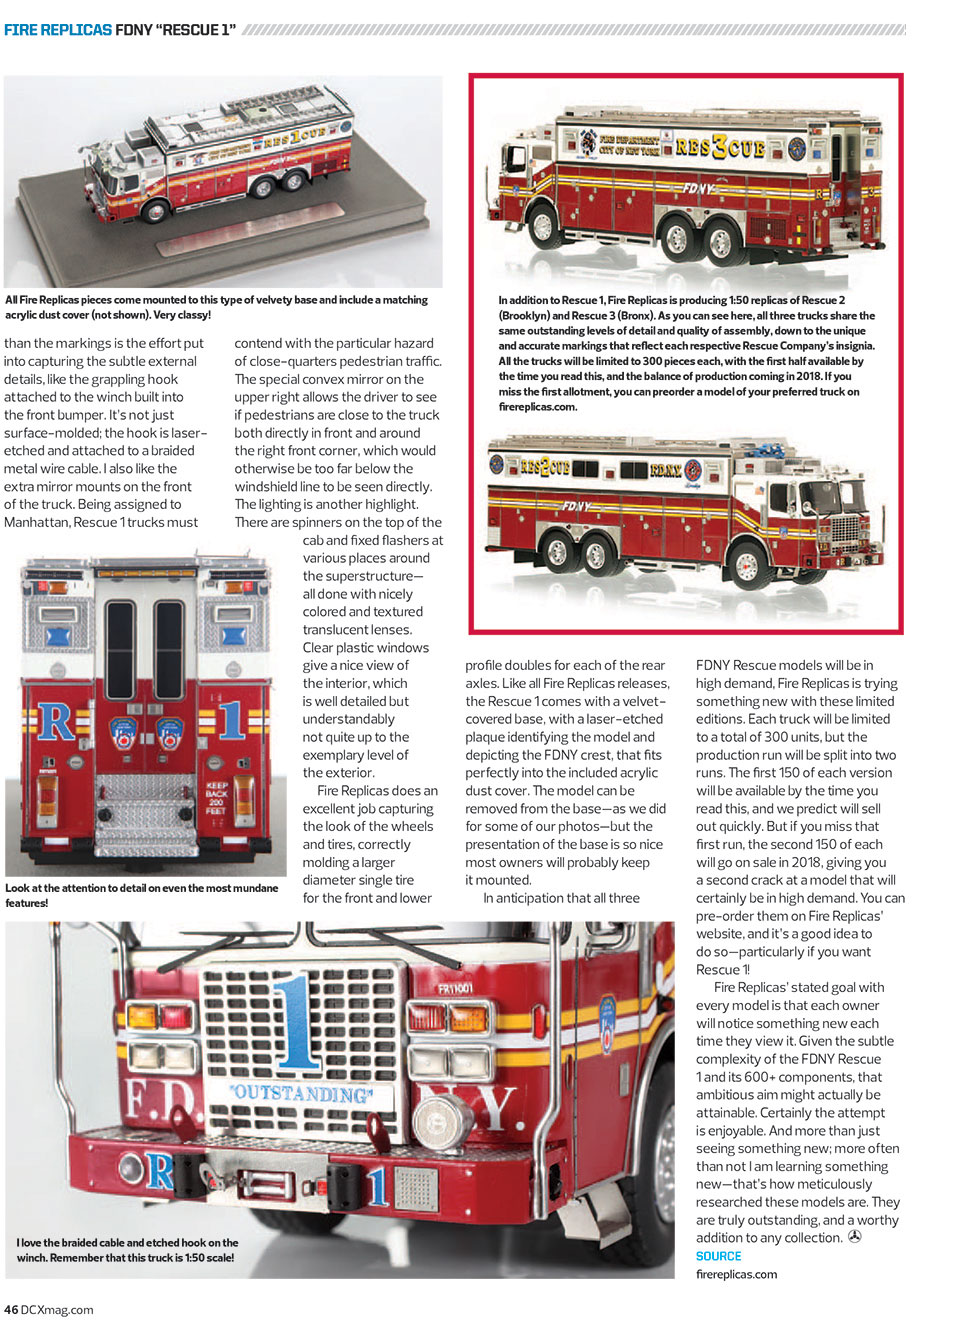 Learn more about FDNY's Rescue 1